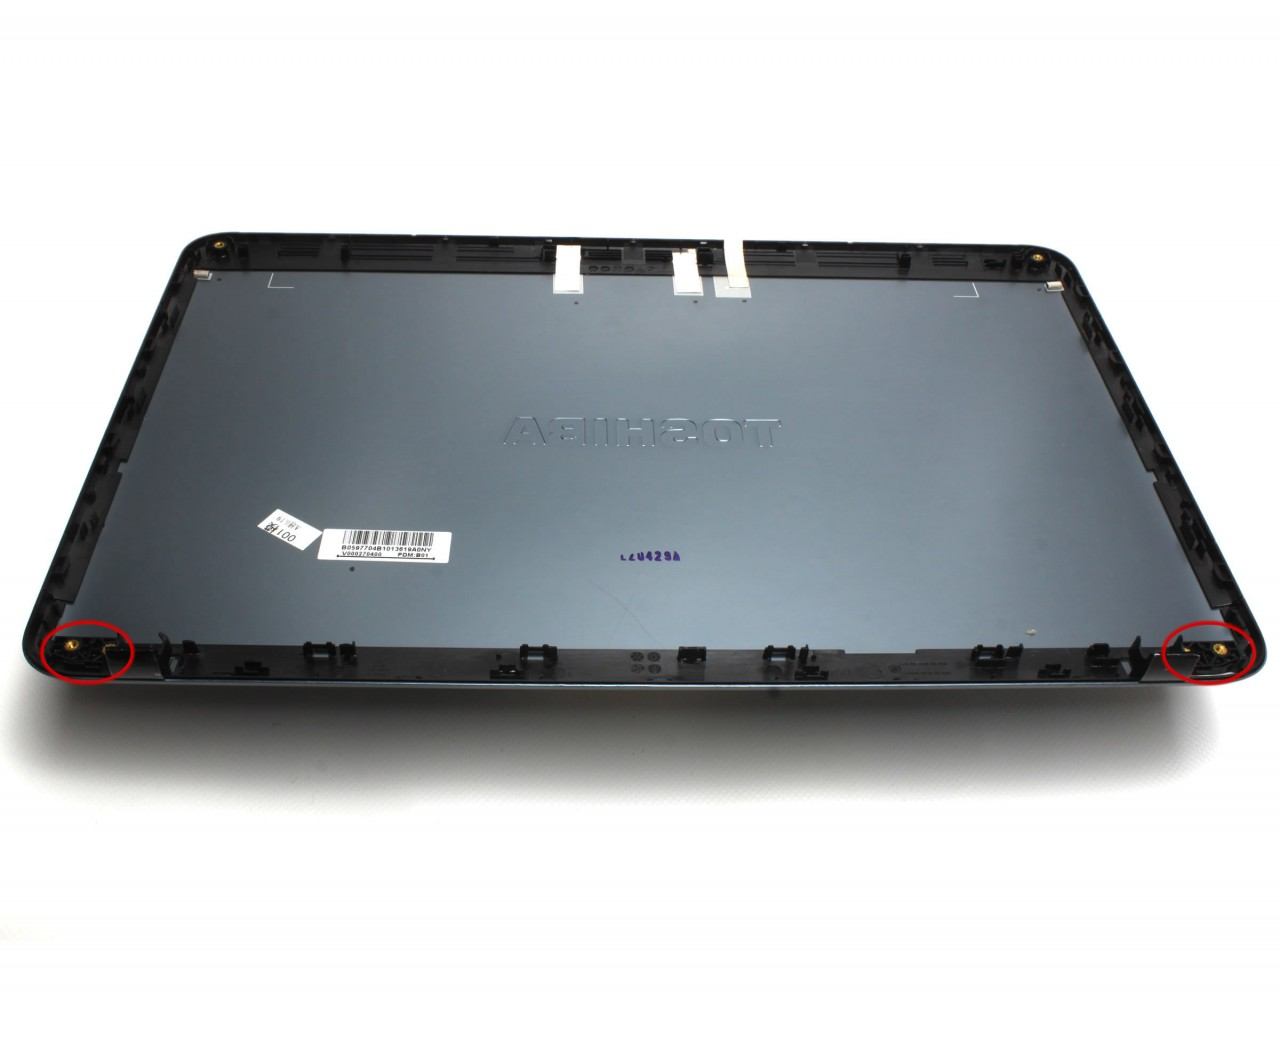 Capac Display BackCover Toshiba Satellite L850 Carcasa Display Gri cu 2 Suruburi Balamale imagine powerlaptop.ro 2021